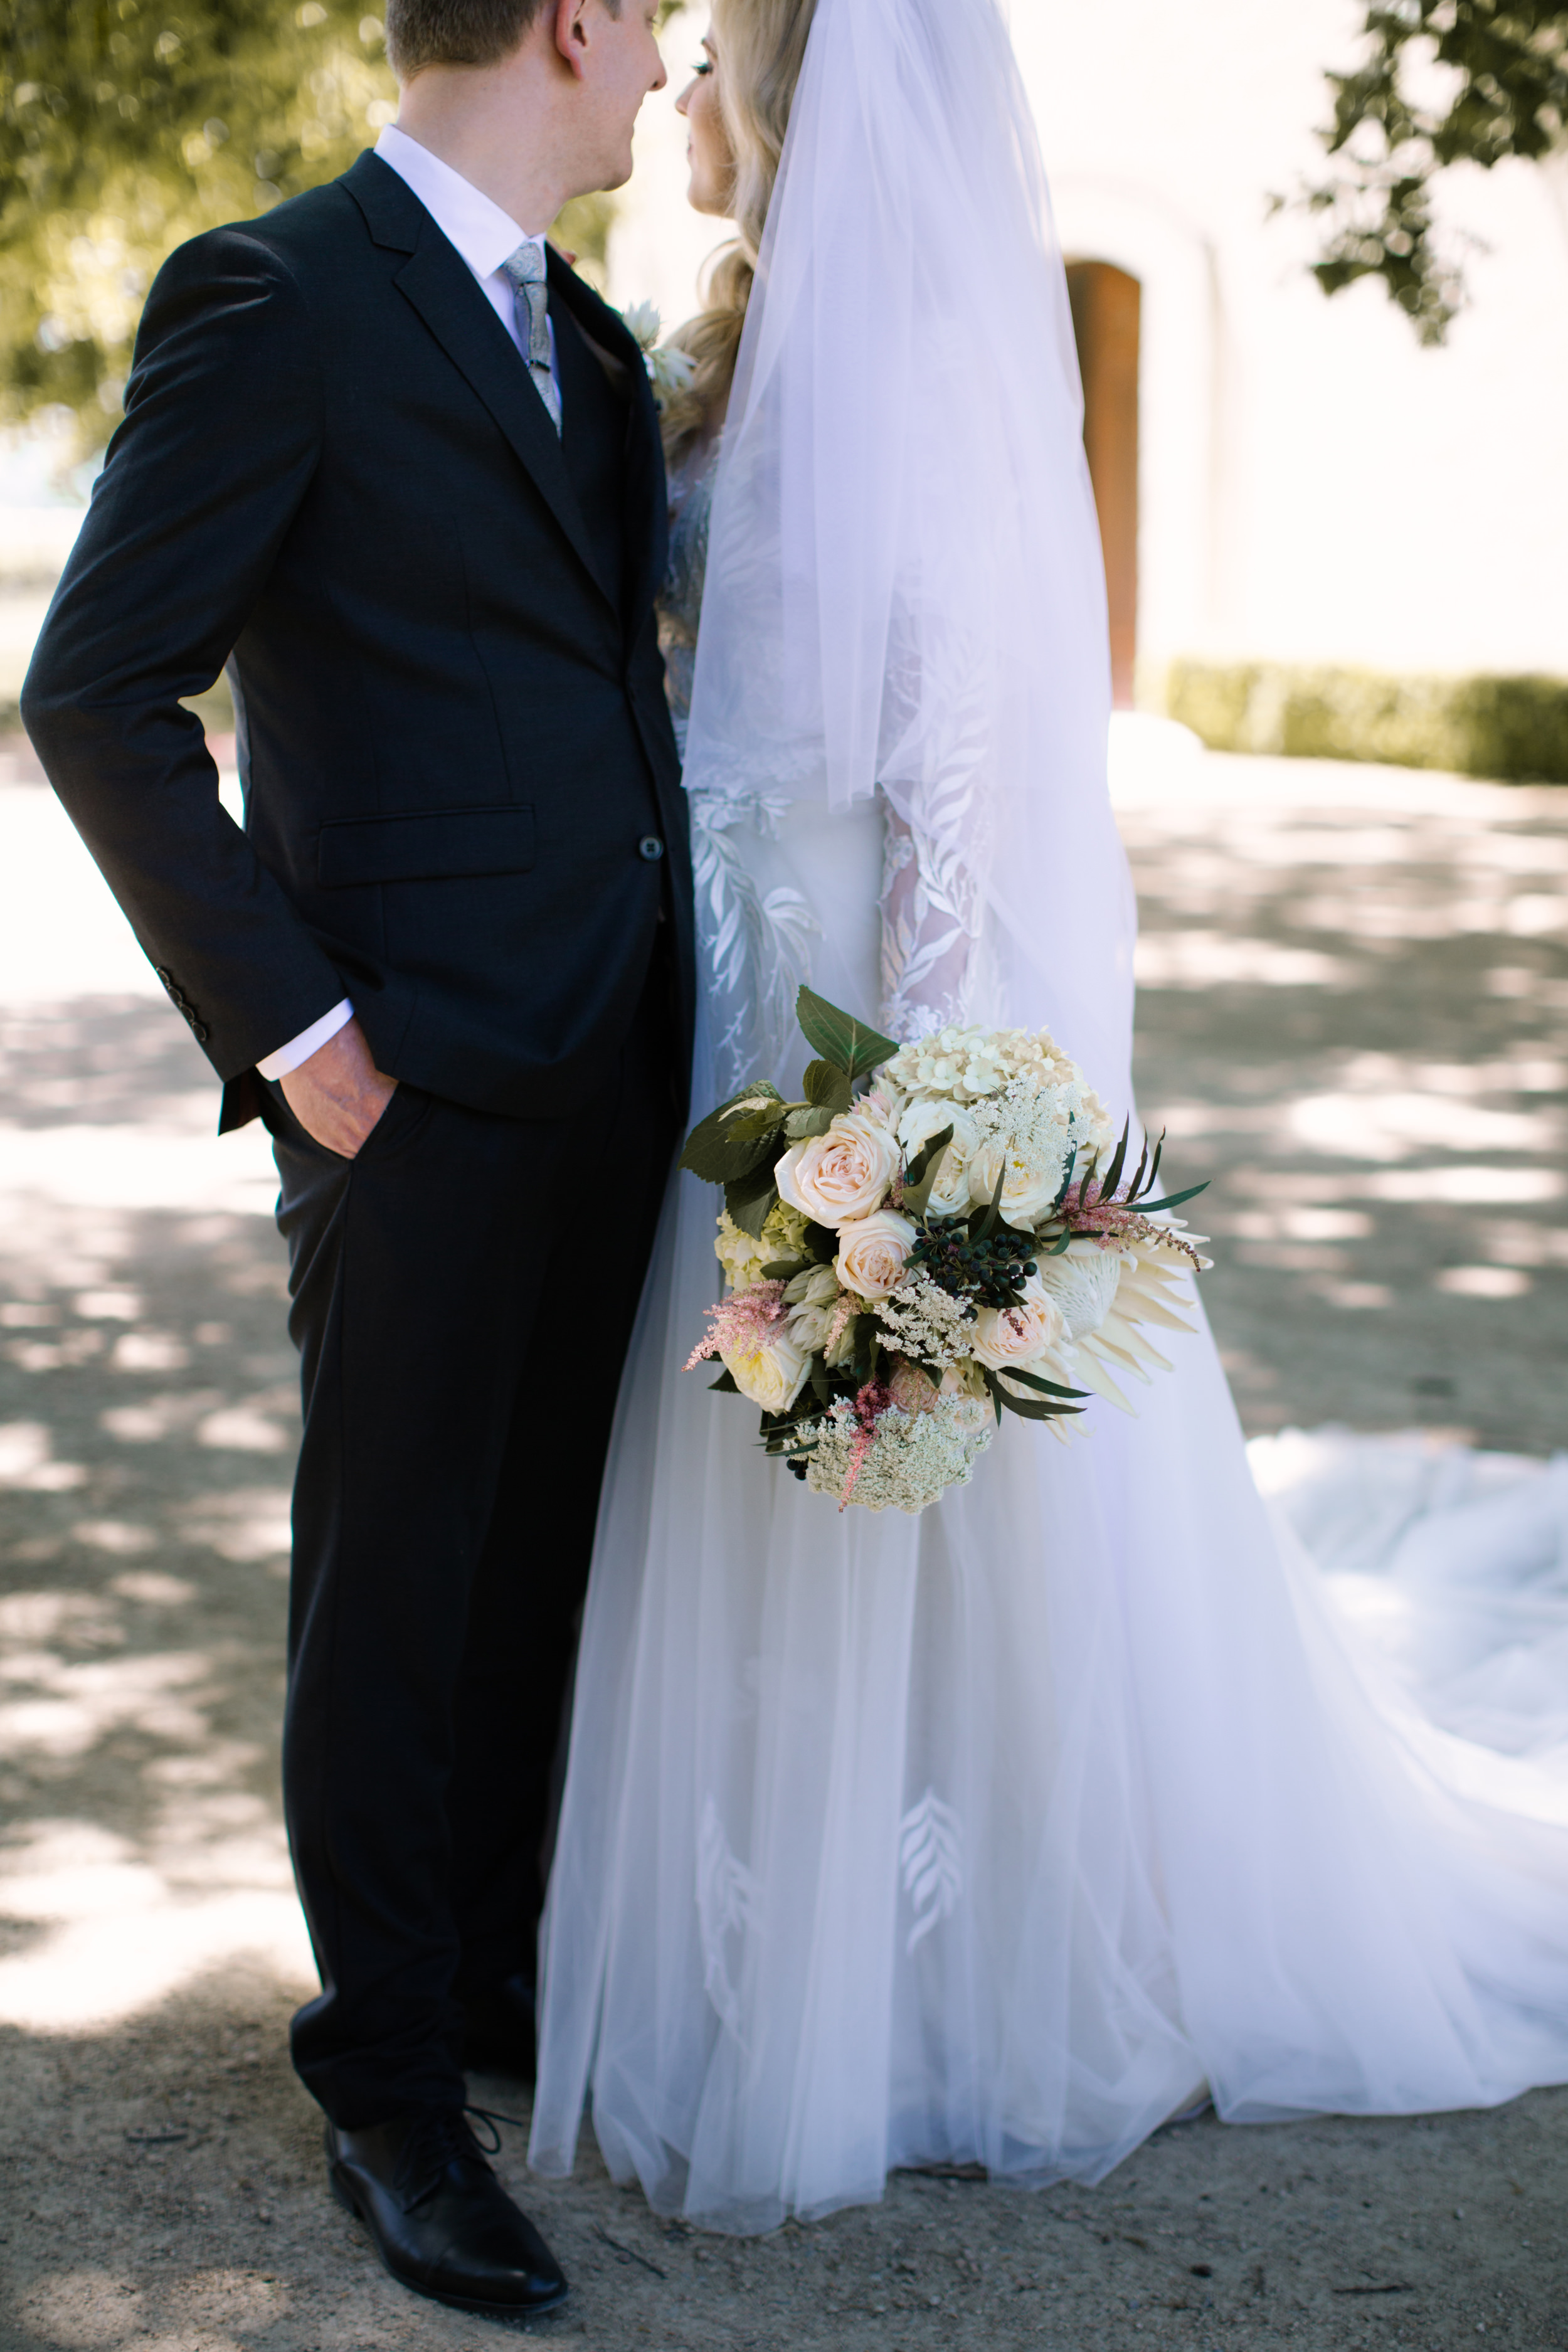 I-Got-You-Babe-&.Co.-Stones-of-the-Yarra-Valley-Wedding-Beverly-Ross0107.JPG